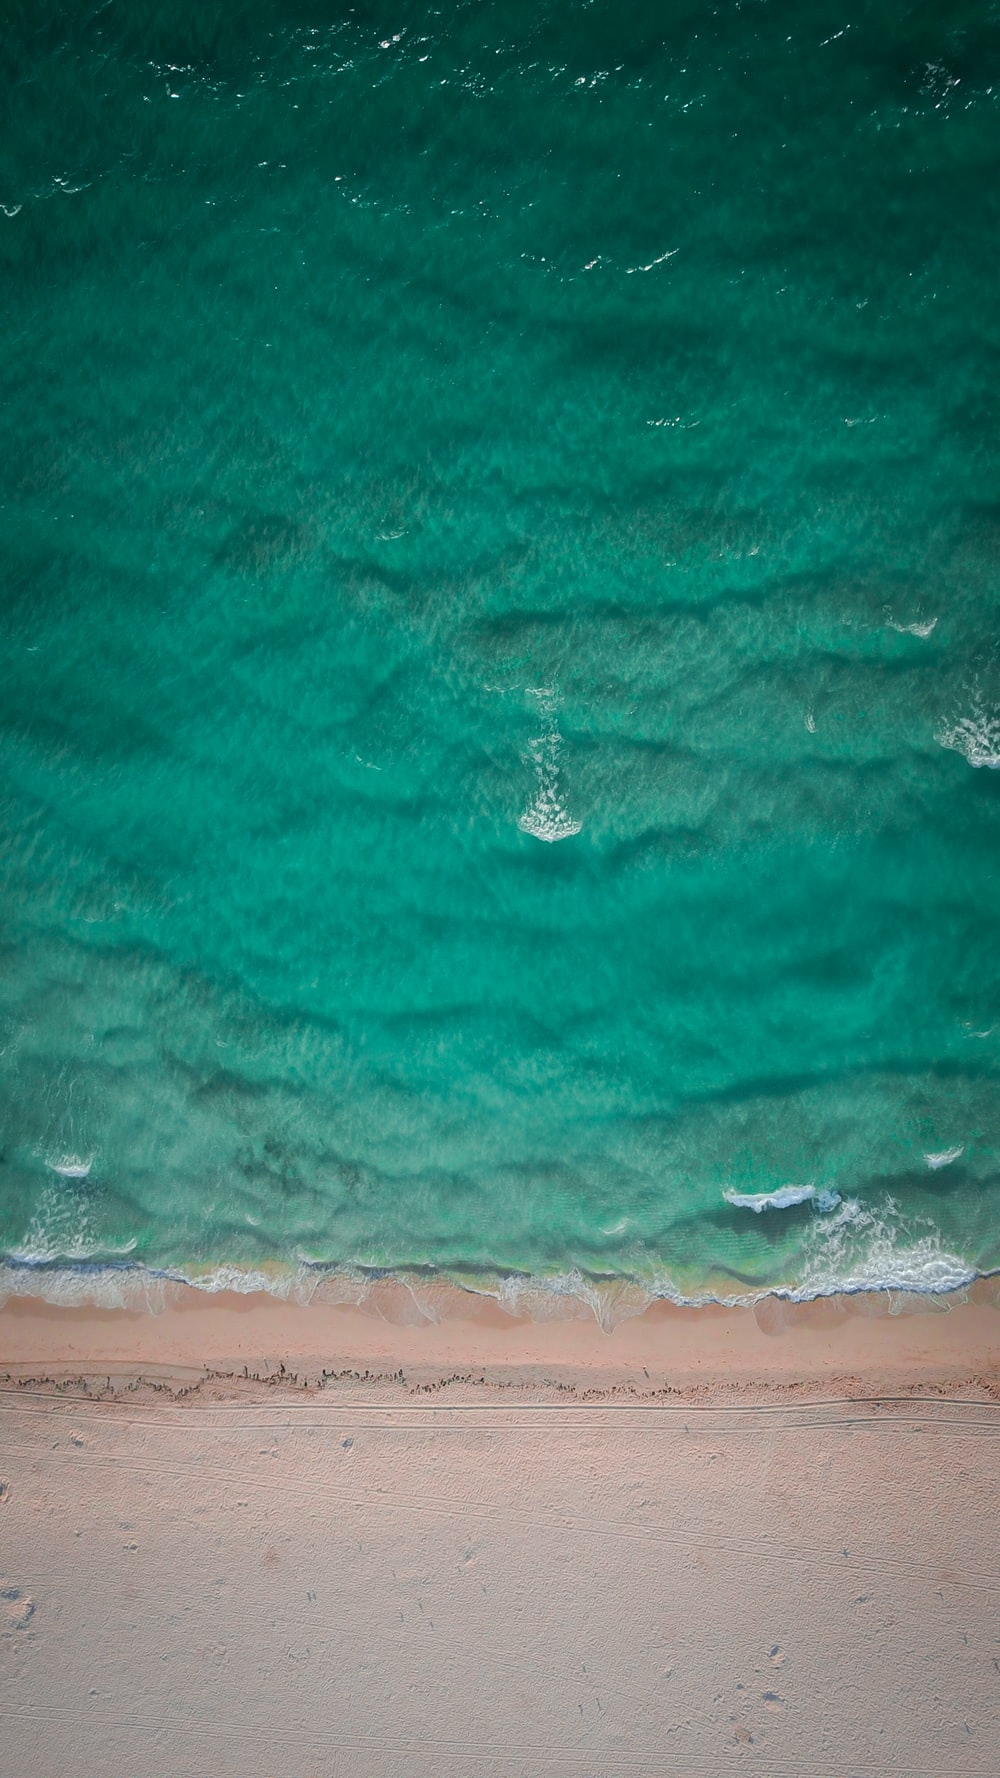 aerial photo of green body of water at daytime